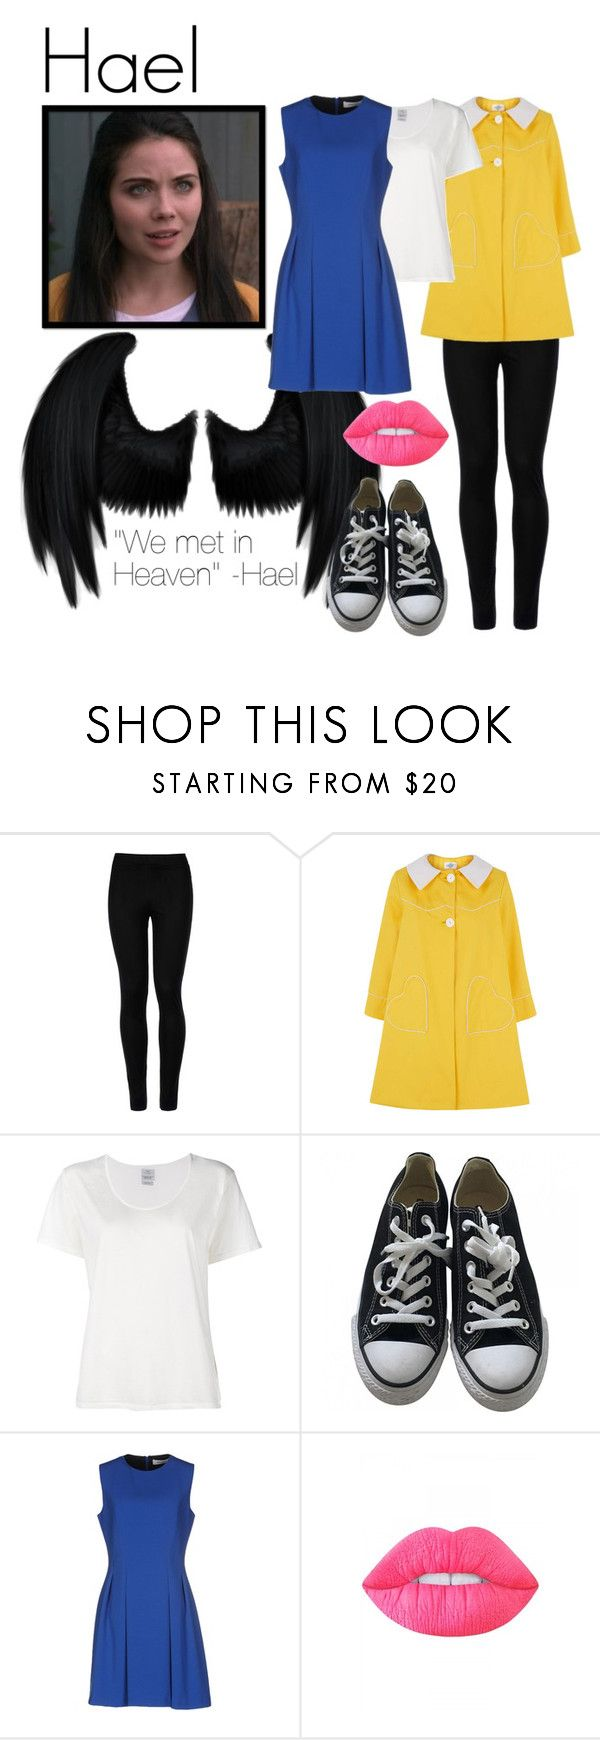 """""""Hael"""" by cas1967 ❤ liked on Polyvore featuring Wolford, Loveheart, Visvim, Converse, Mauro Grifoni, Lime Crime, angel, supernatural, cw and hael"""